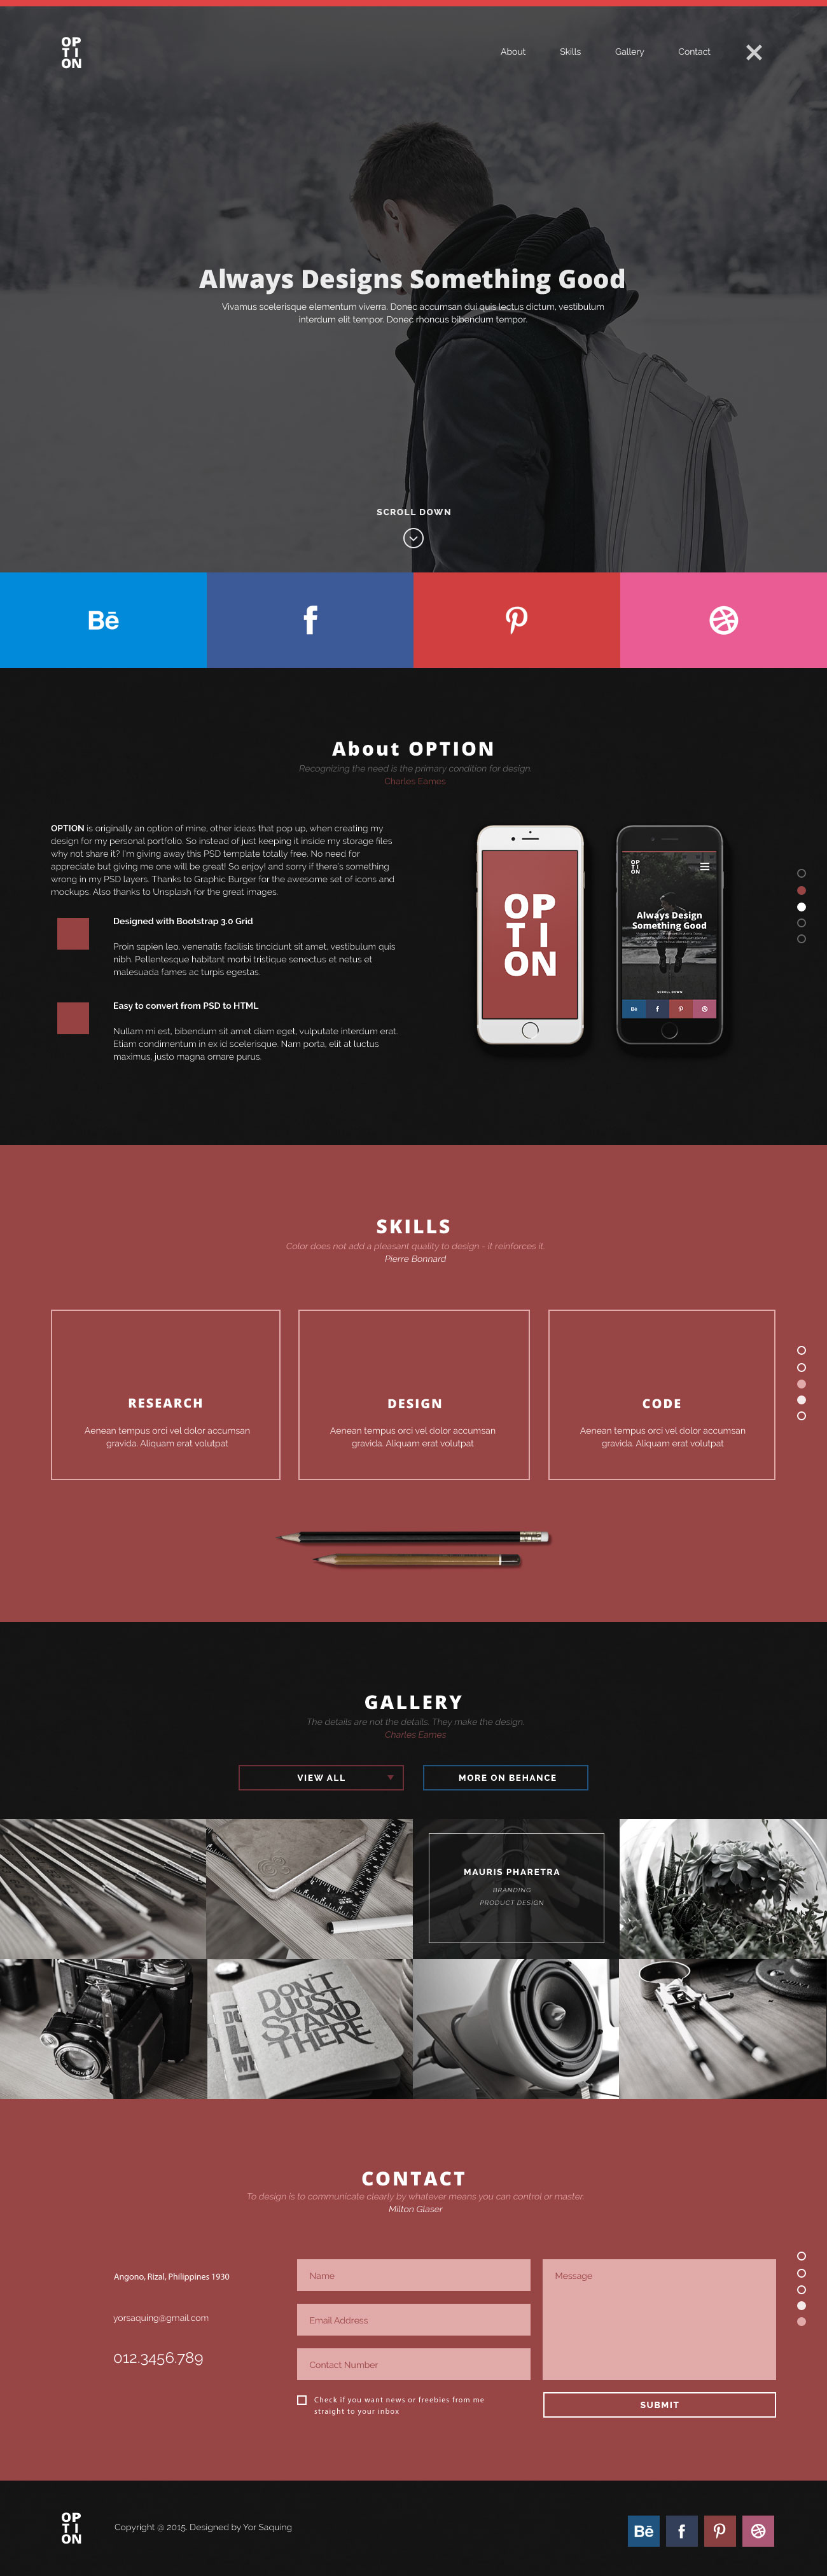 Option One Page Free Web Design Template Free Html5 Templates